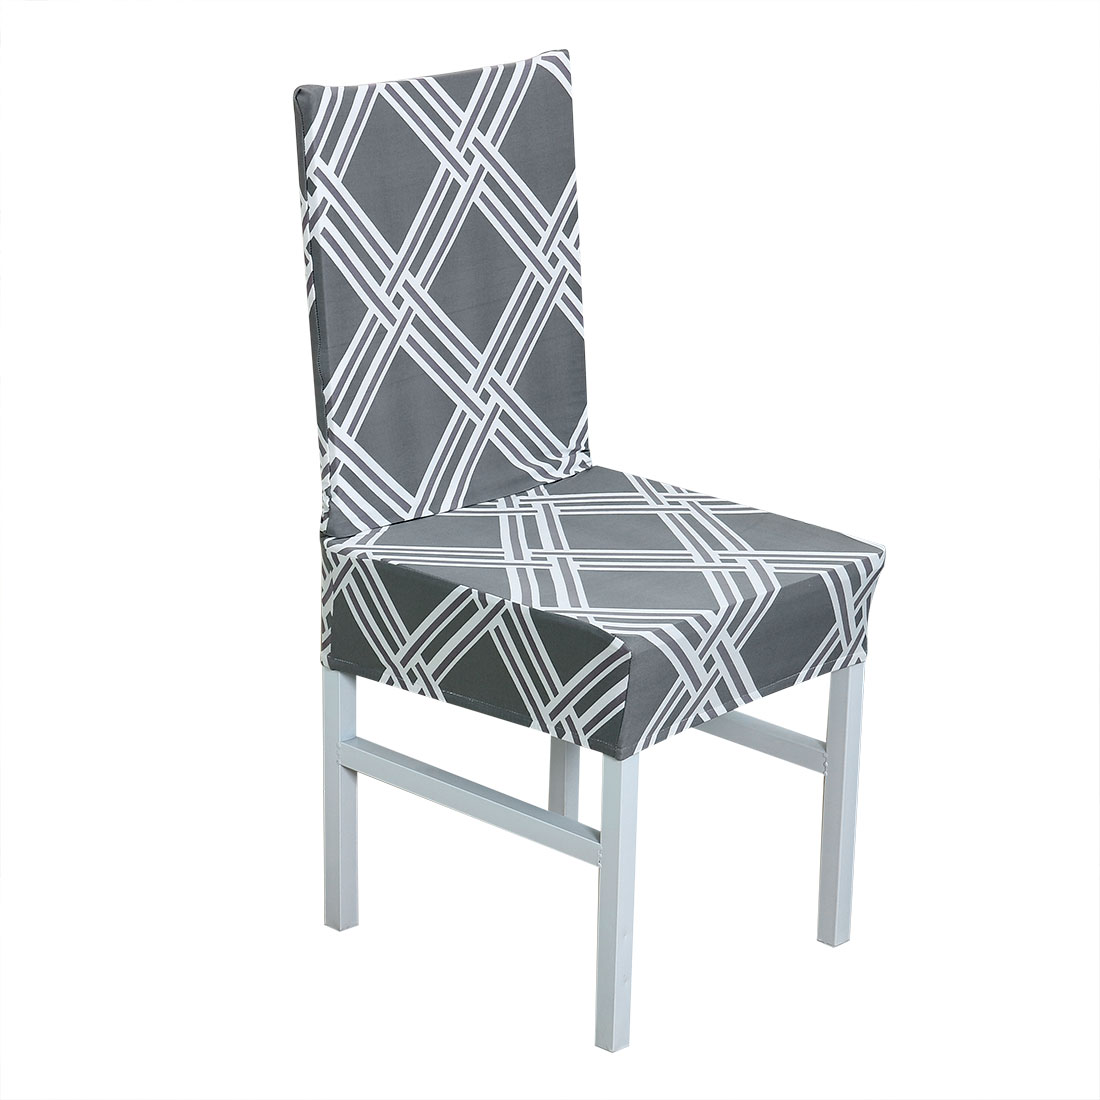 Removable Stretch Dining Chair Cover Protector Slipcover for Wedding Home, #19